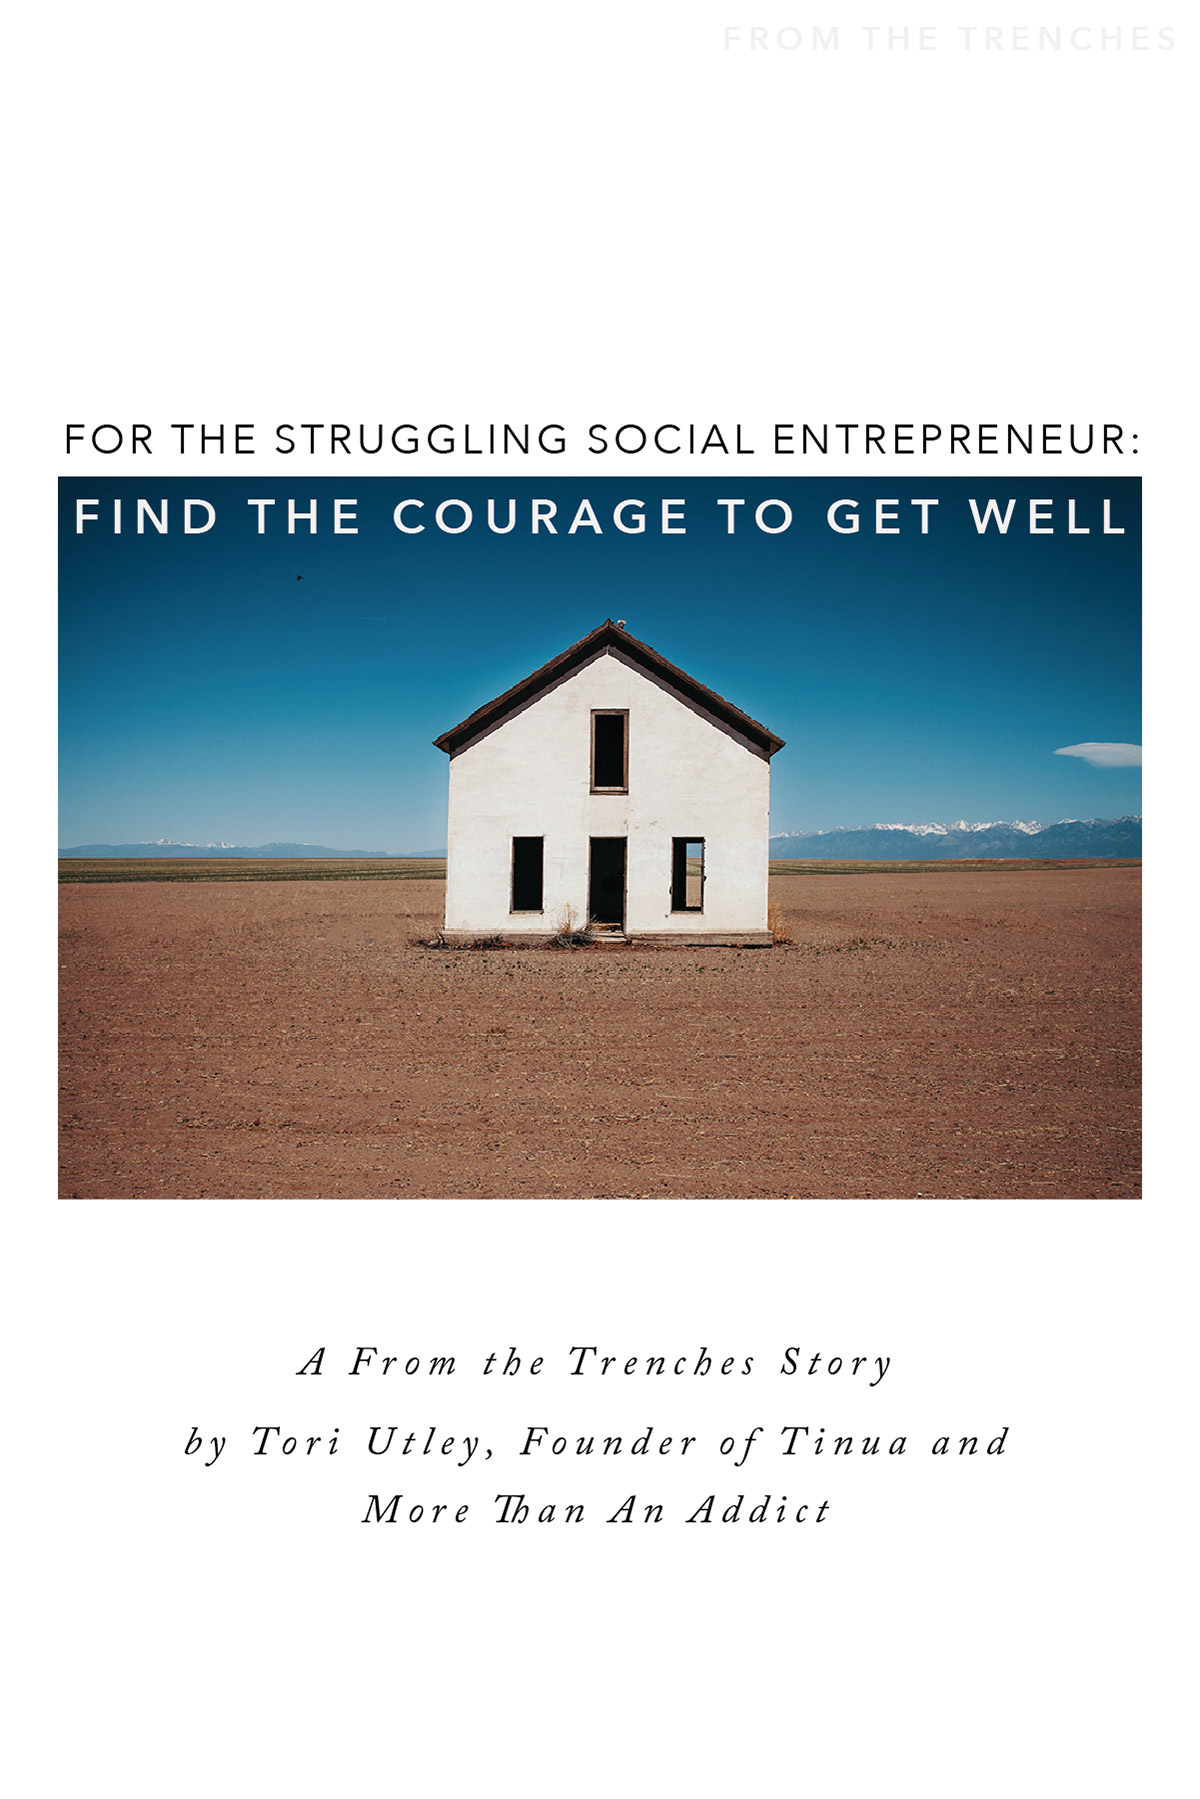 For The Struggling Social Entrepreneur: Find The Courage To Get Well A From the Trenches Story by Tori Utley on Self-Care for Entrepreneurs